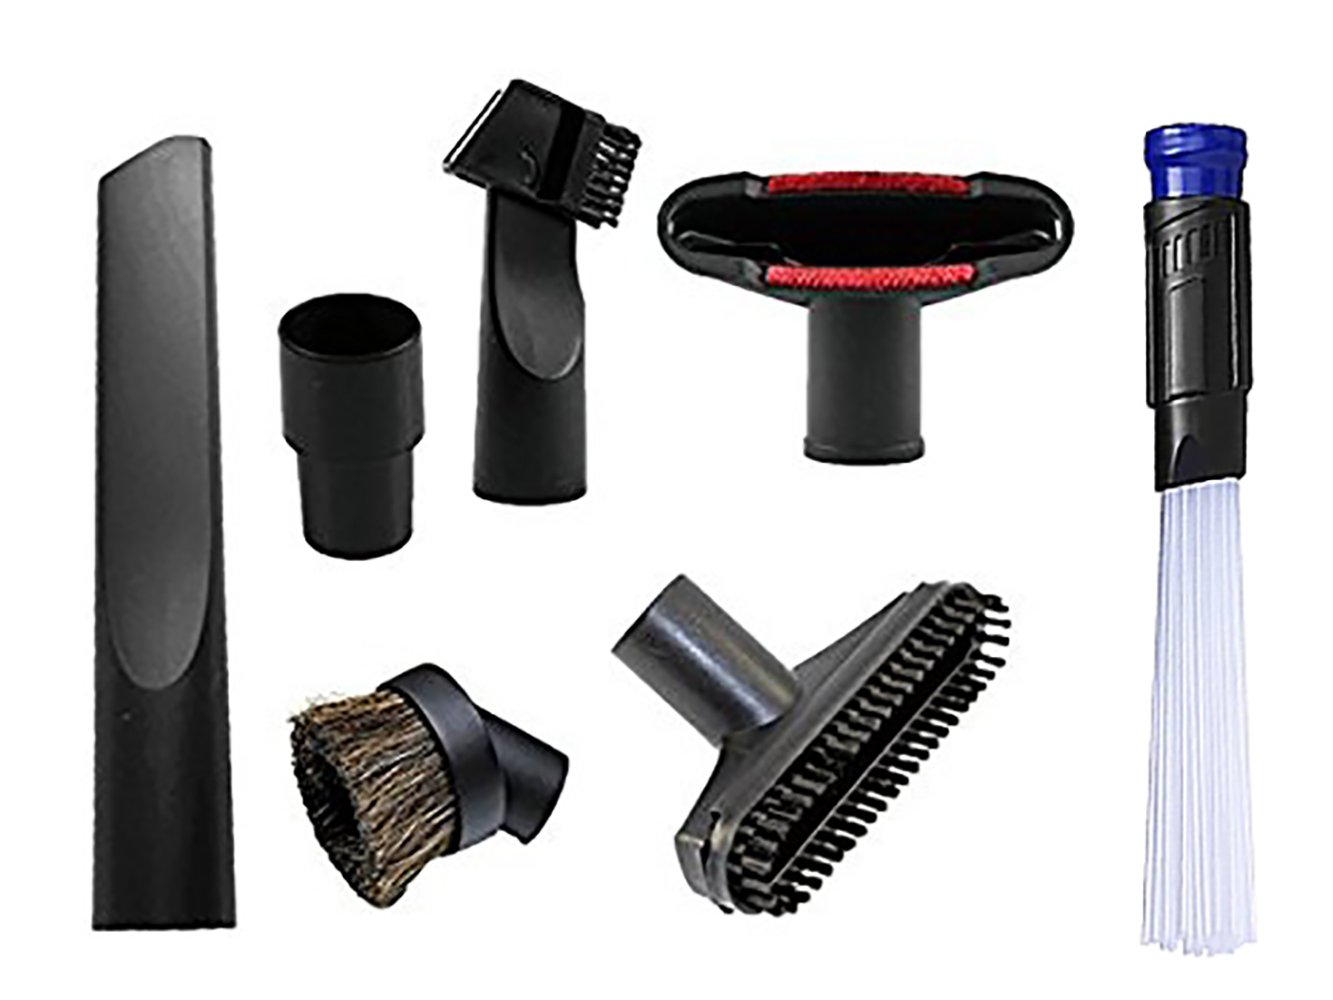 Wonlives Universal Replacement 32mm (1 1/4 inch Vacuum attachments) and 35mm (1 3/8 inch) Vacuum Accessories Dusty Brush Kit for Standard Hose Set of 7